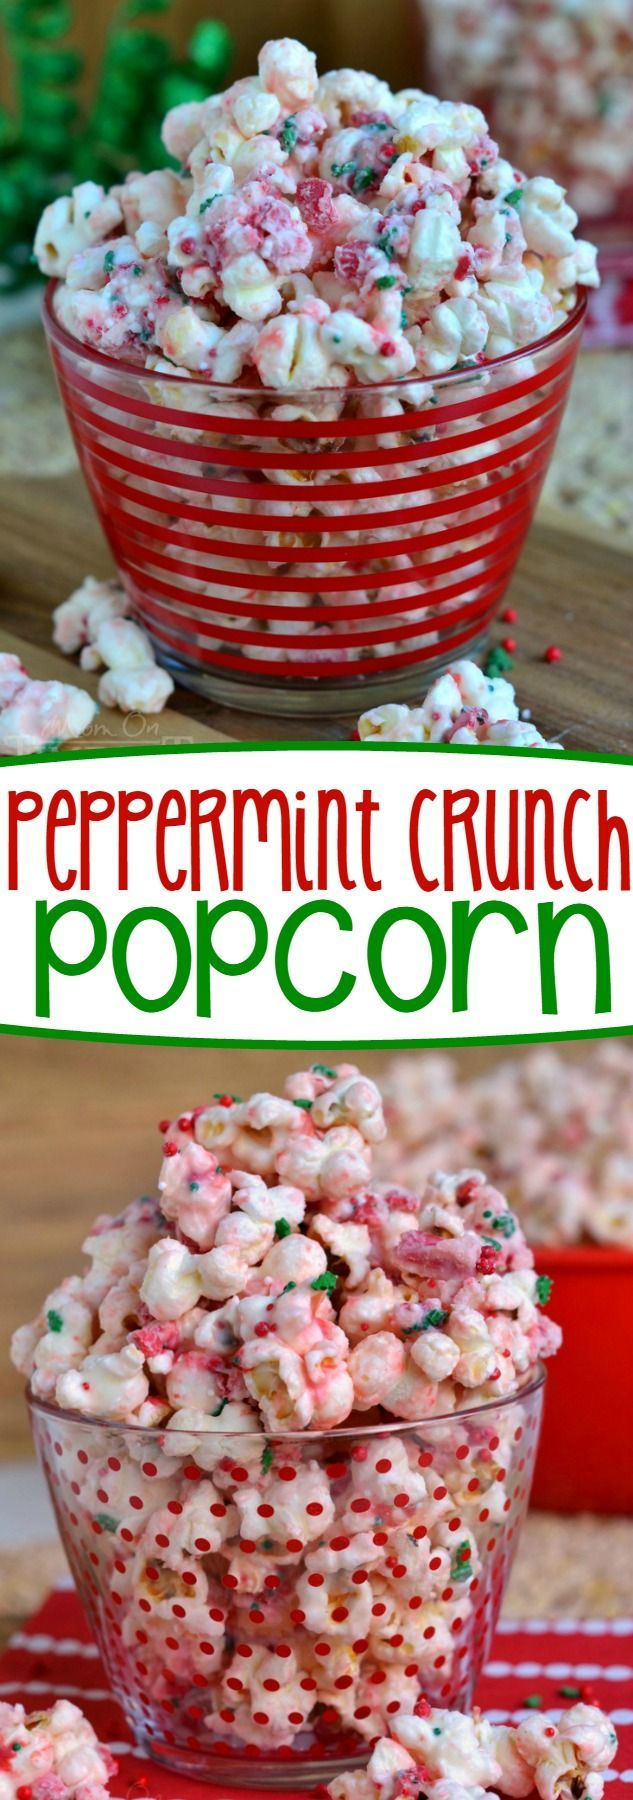 Peppermint Crunch Popcorn – Mom On Timeout